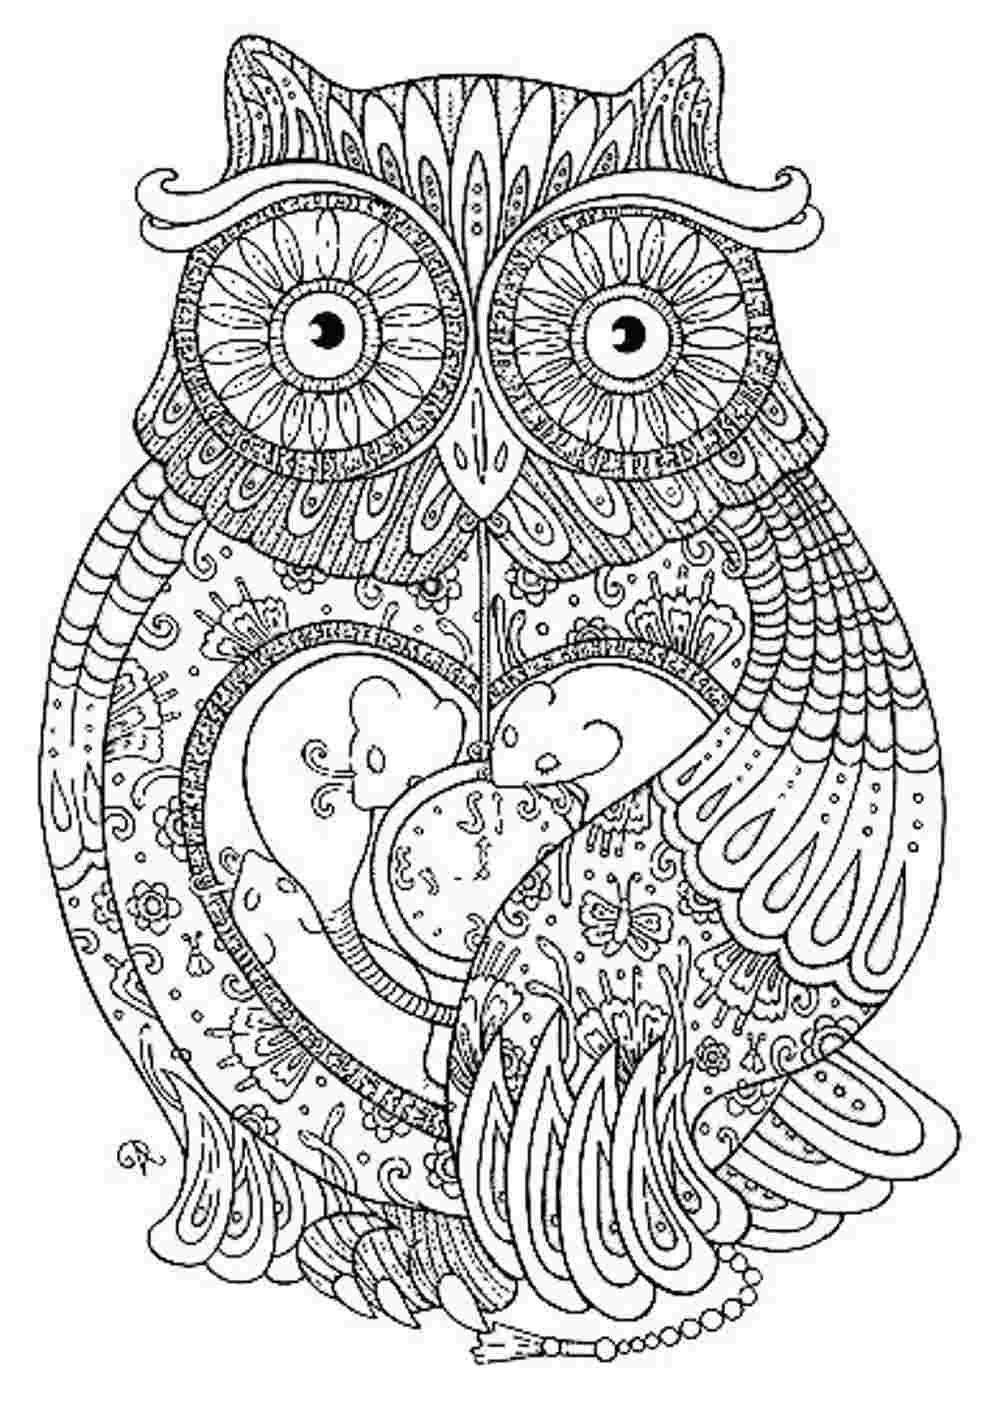 Owl Coloring Pages For Adults Owl Coloring Pages